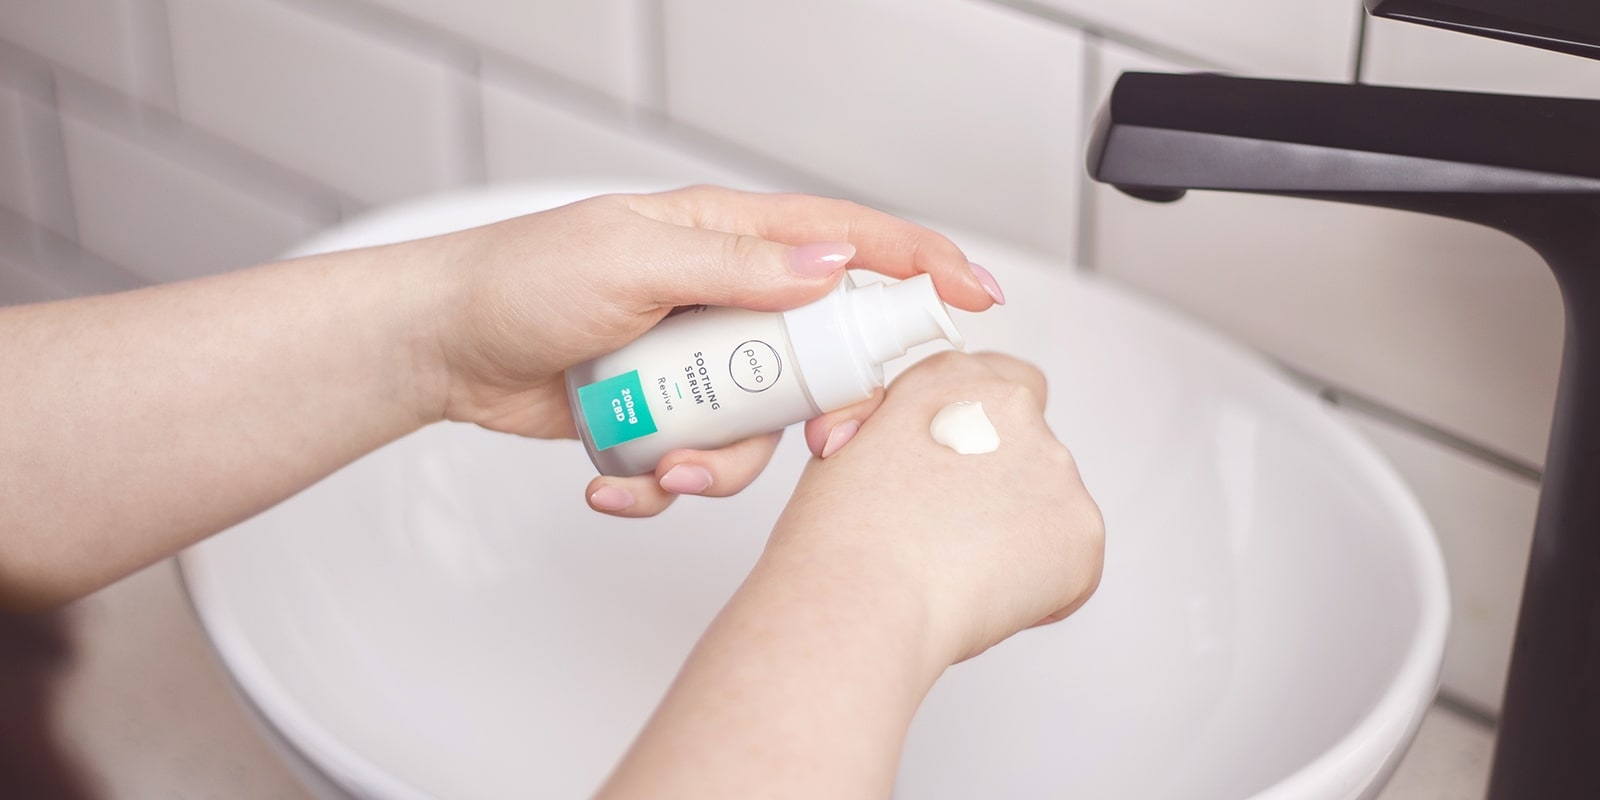 Poko Soothing Serum being applied onto a woman's hand